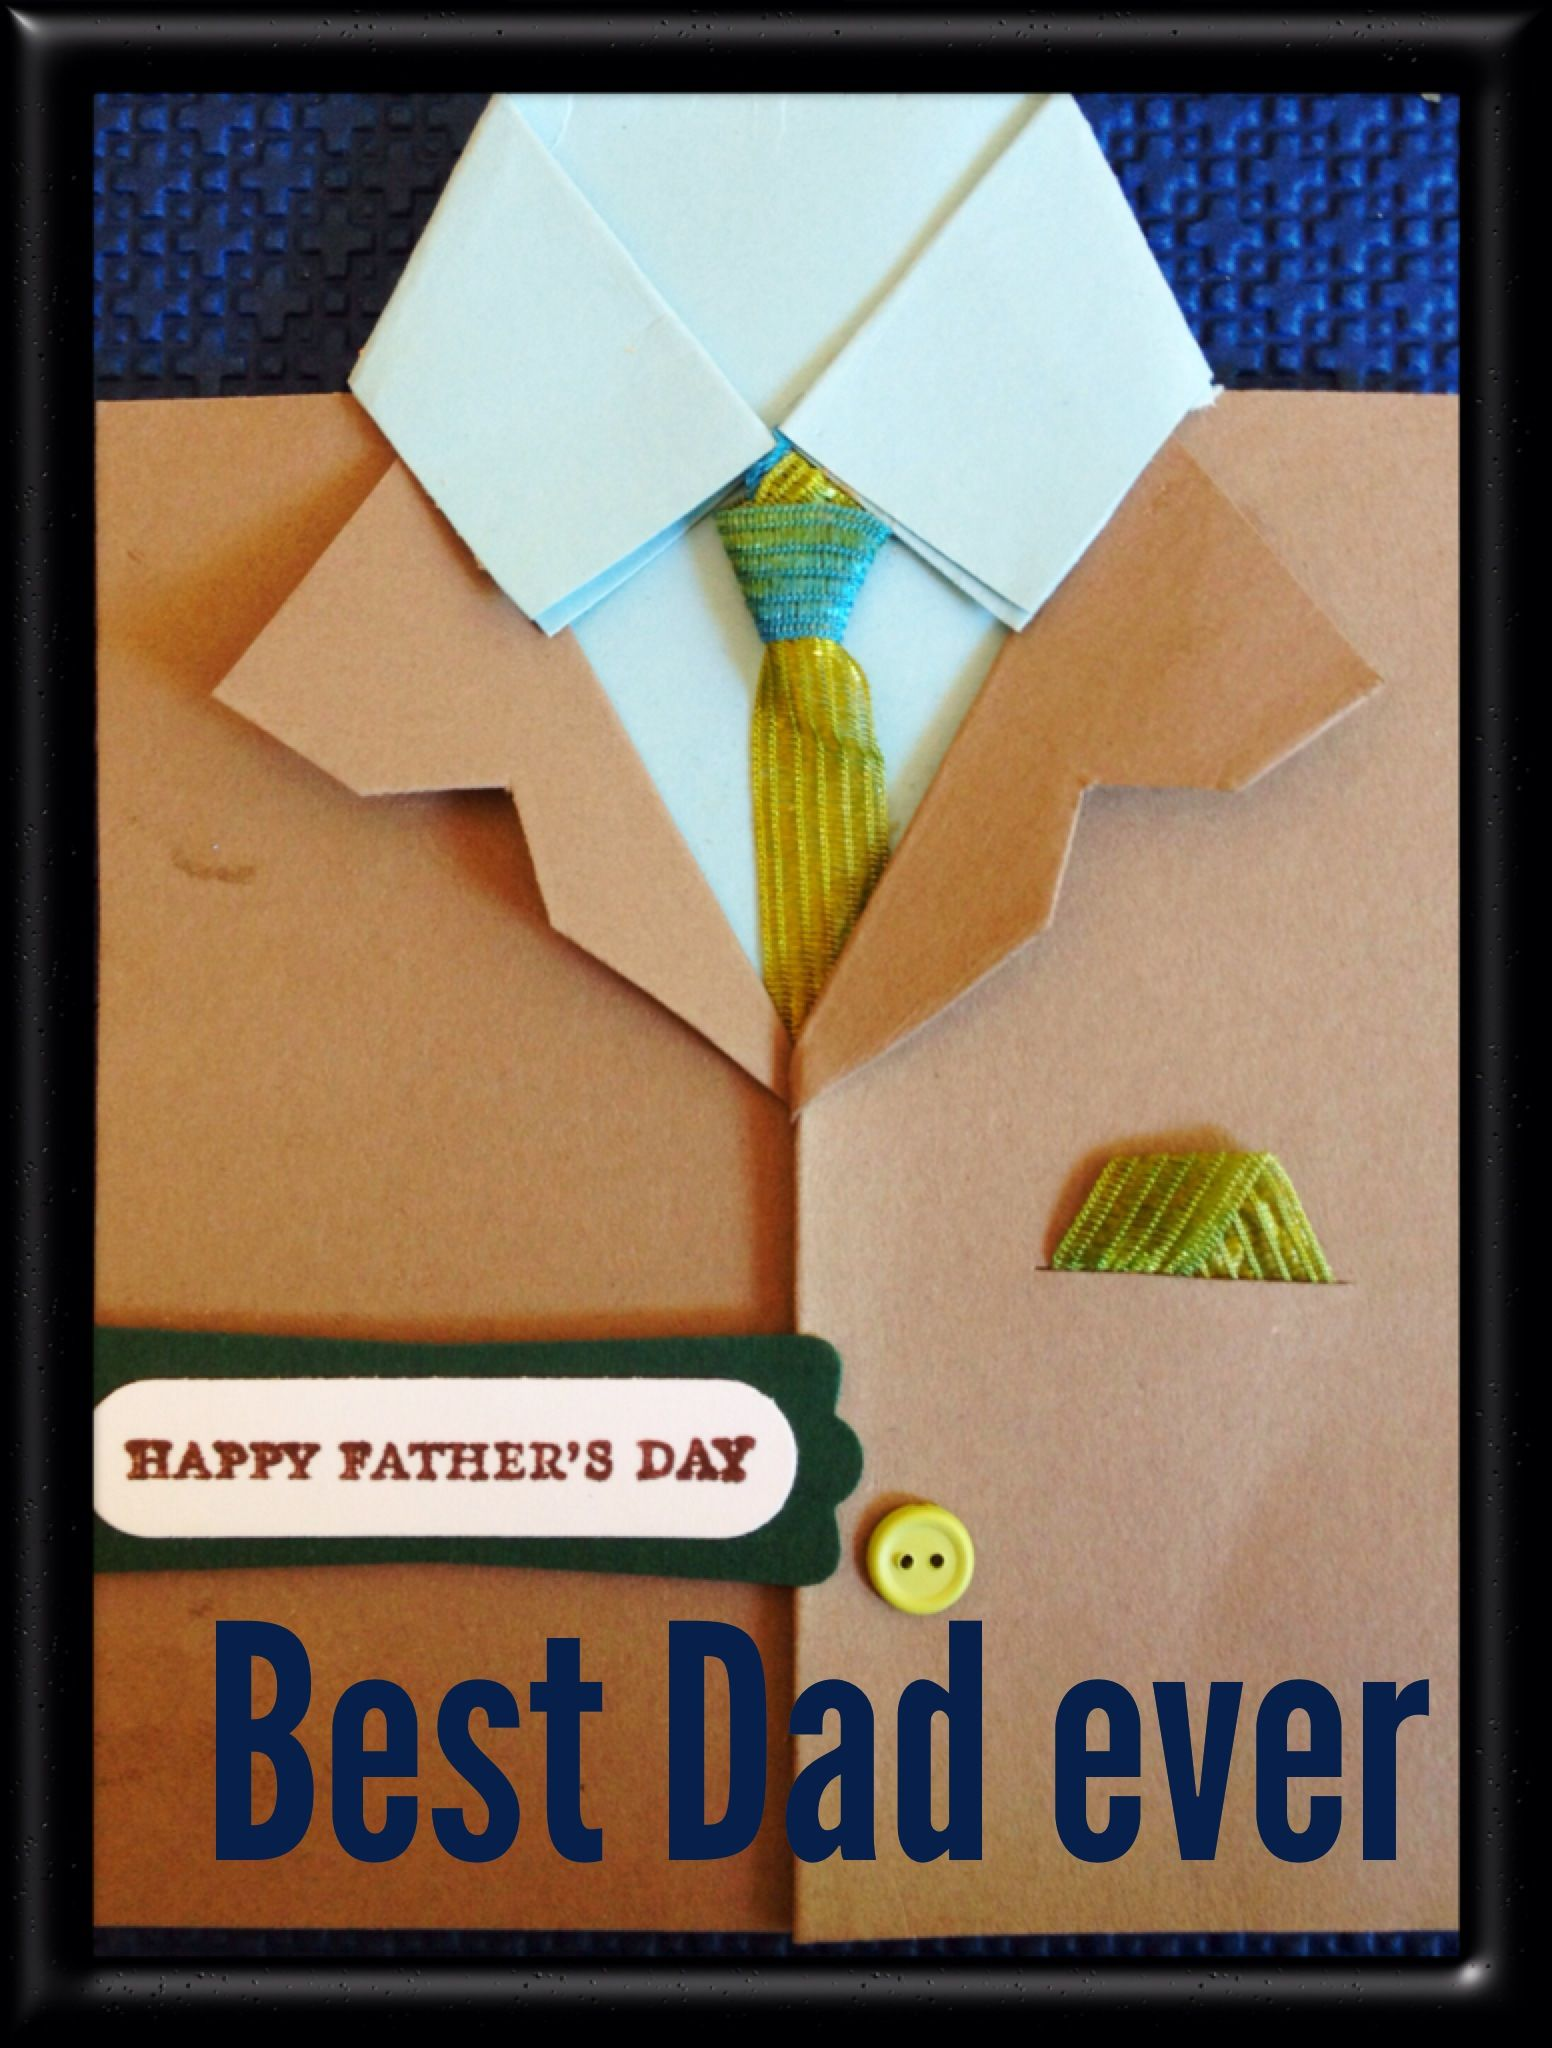 fathers day of this year